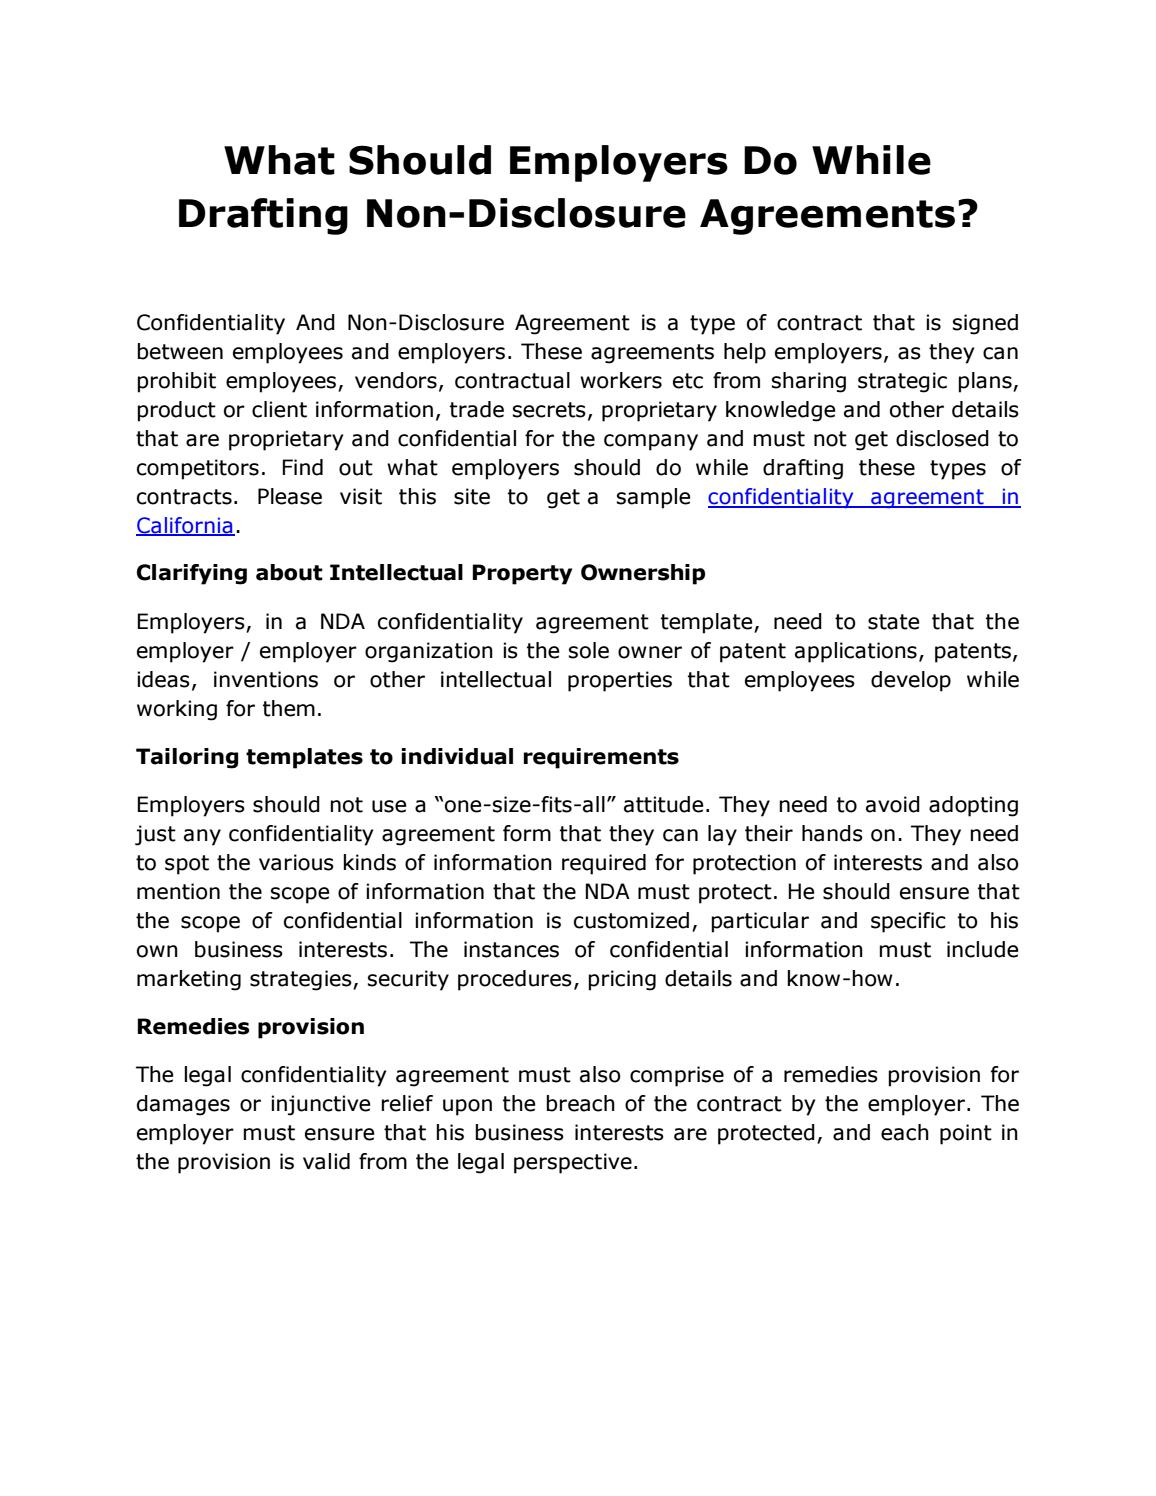 What Should Employers Do While Drafting Non Disclosure